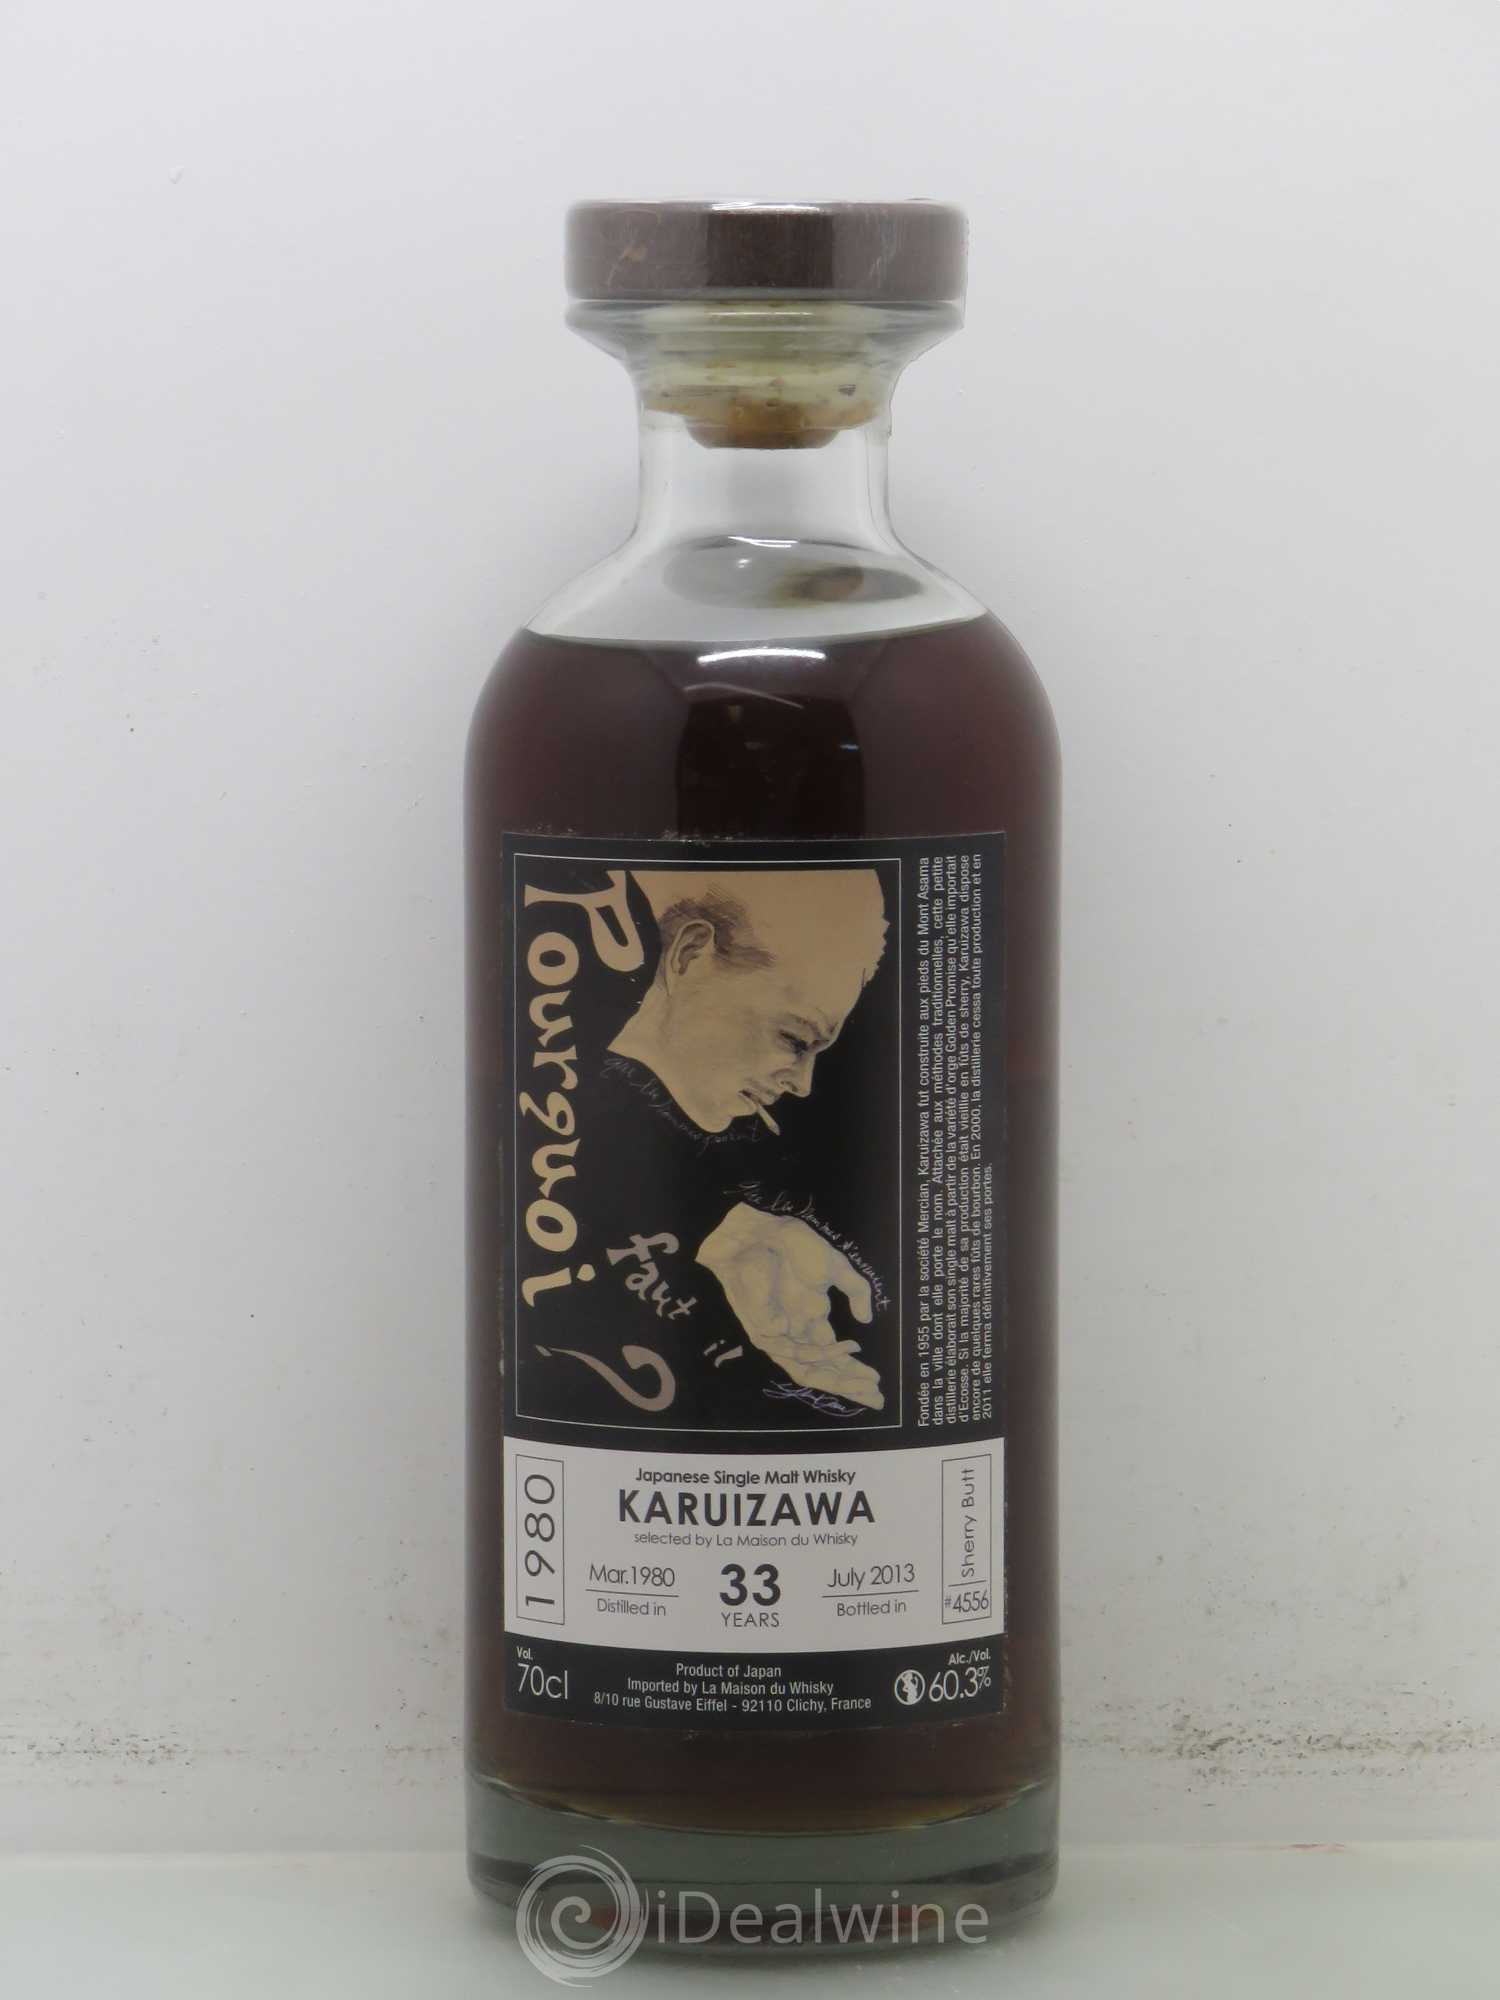 Whisky KARUIZAWA 33 ans Pourquoi faut il 1980-2013 60,3° sherry butt N°4555 1980 - Lot of 1 Bottle